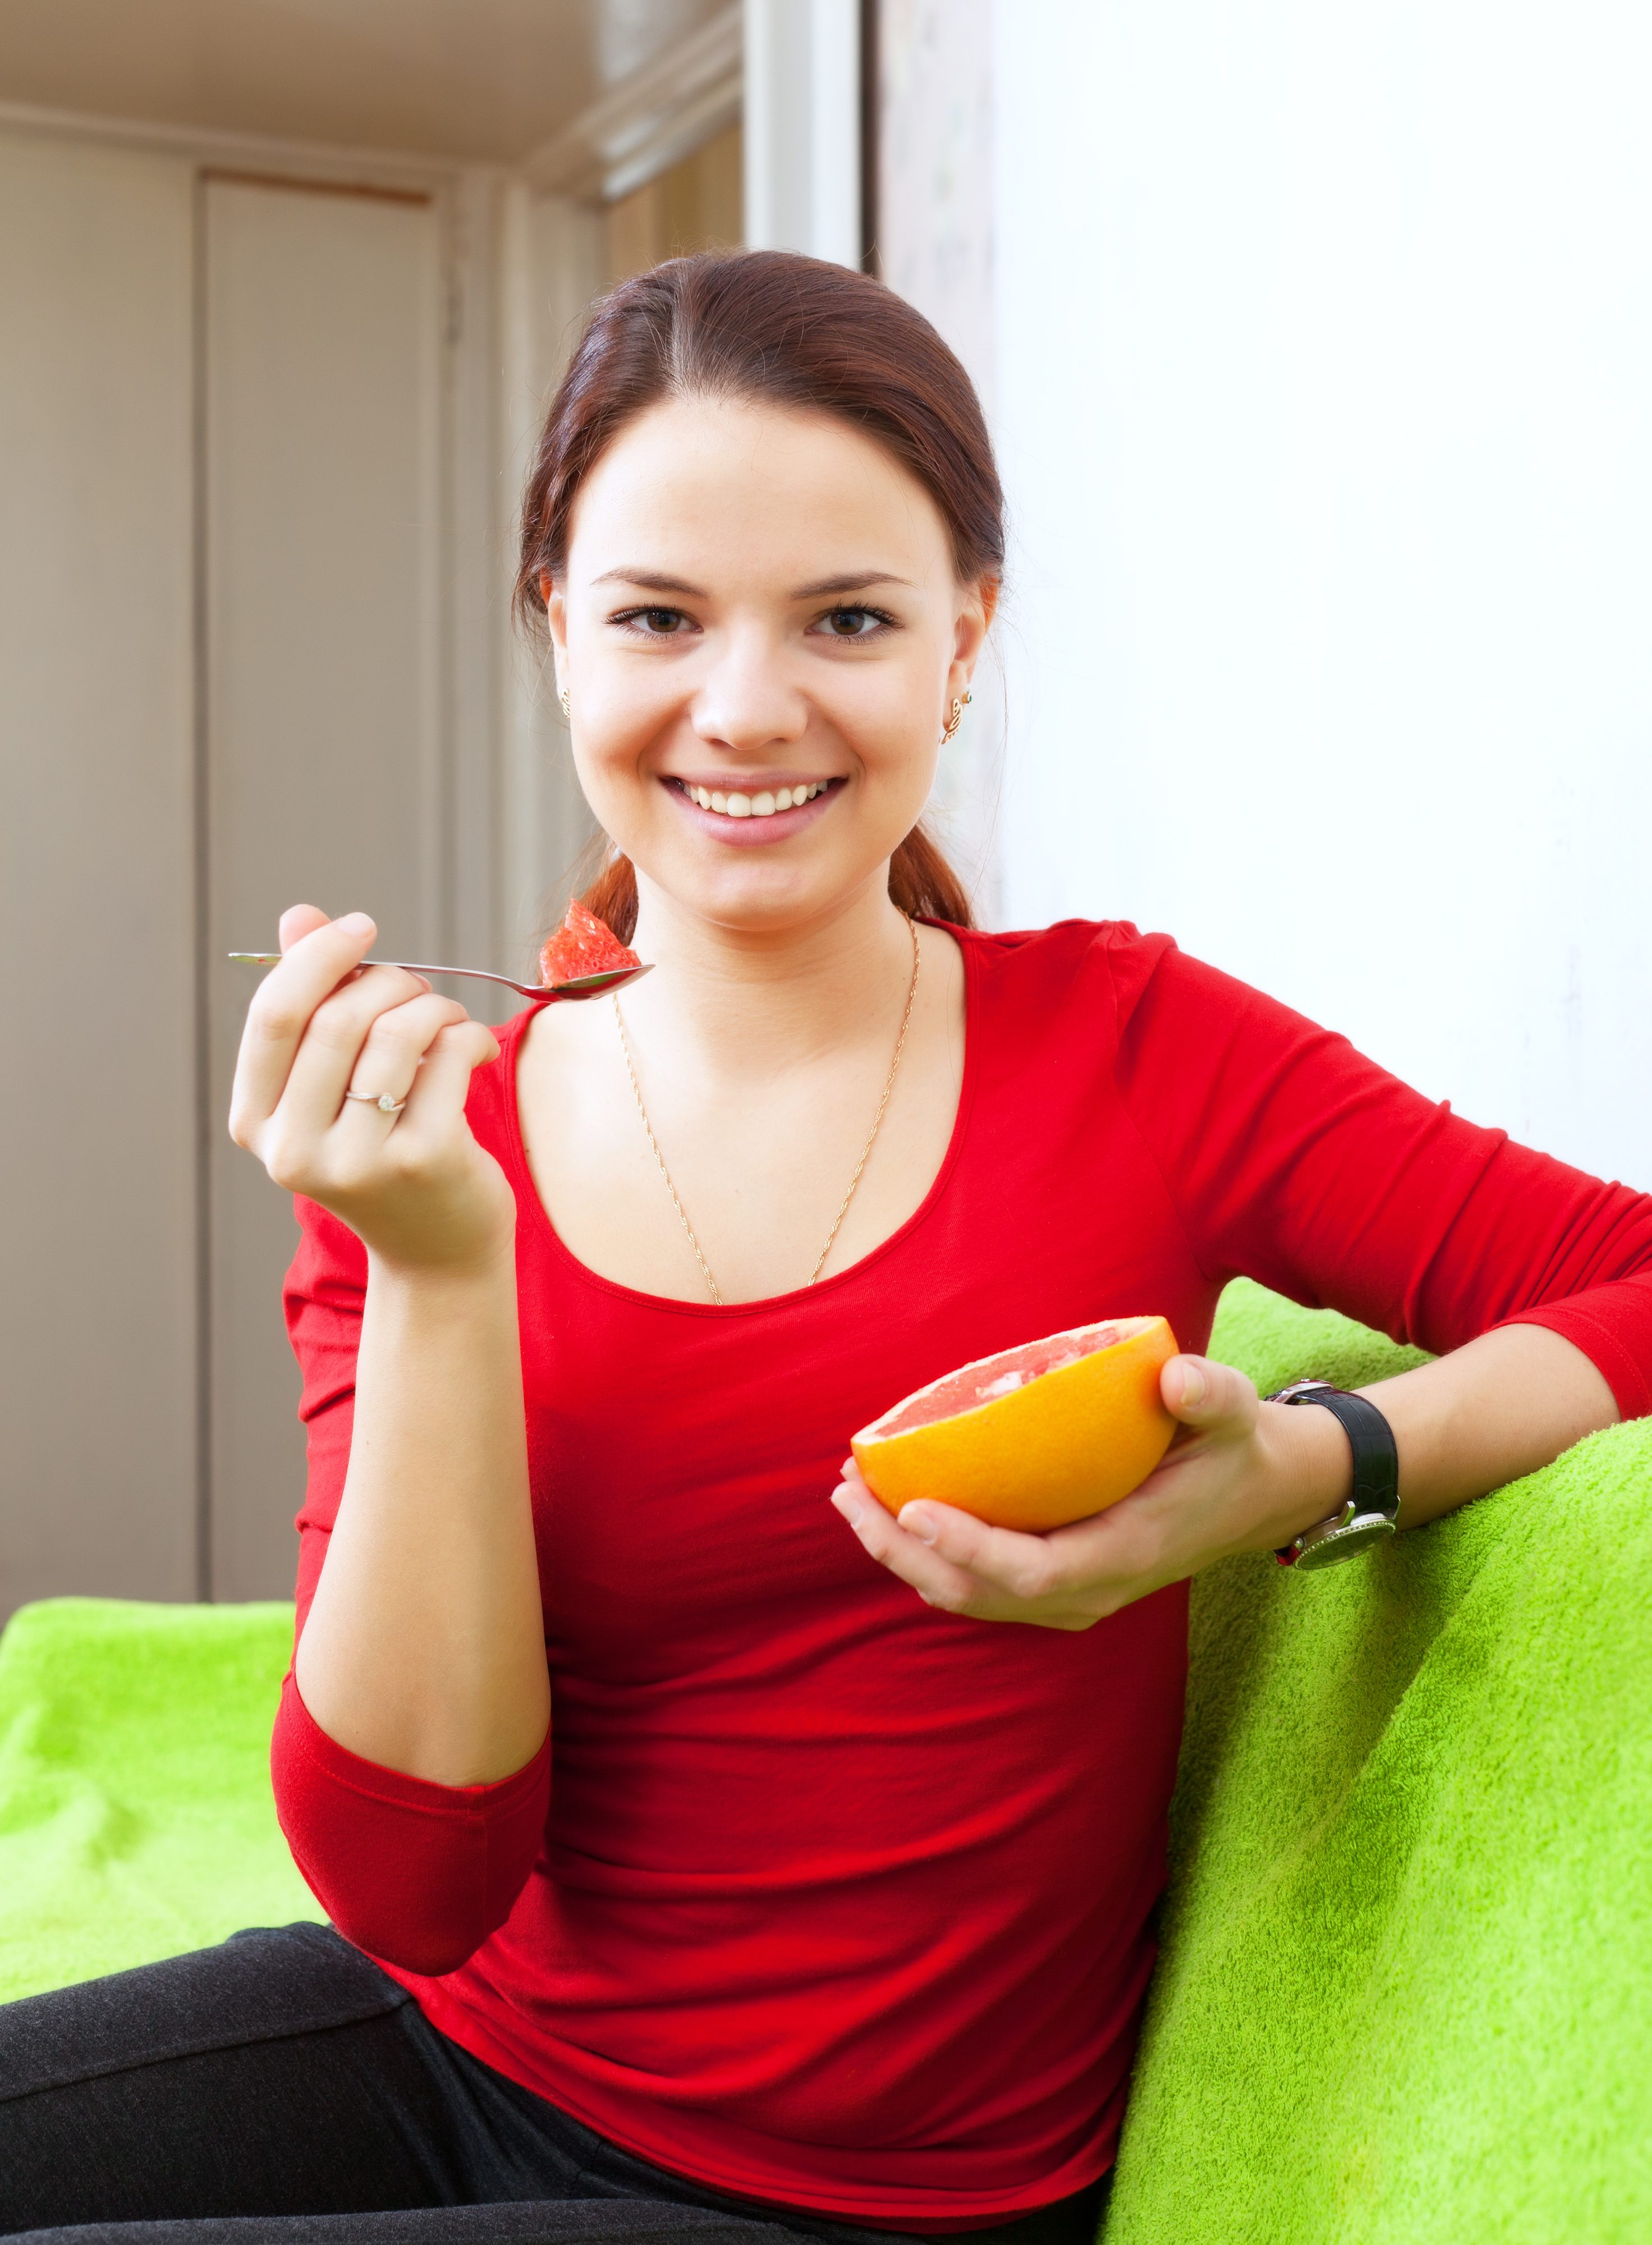 Portrait of long-haired girl in red eats grapefruit at home interior